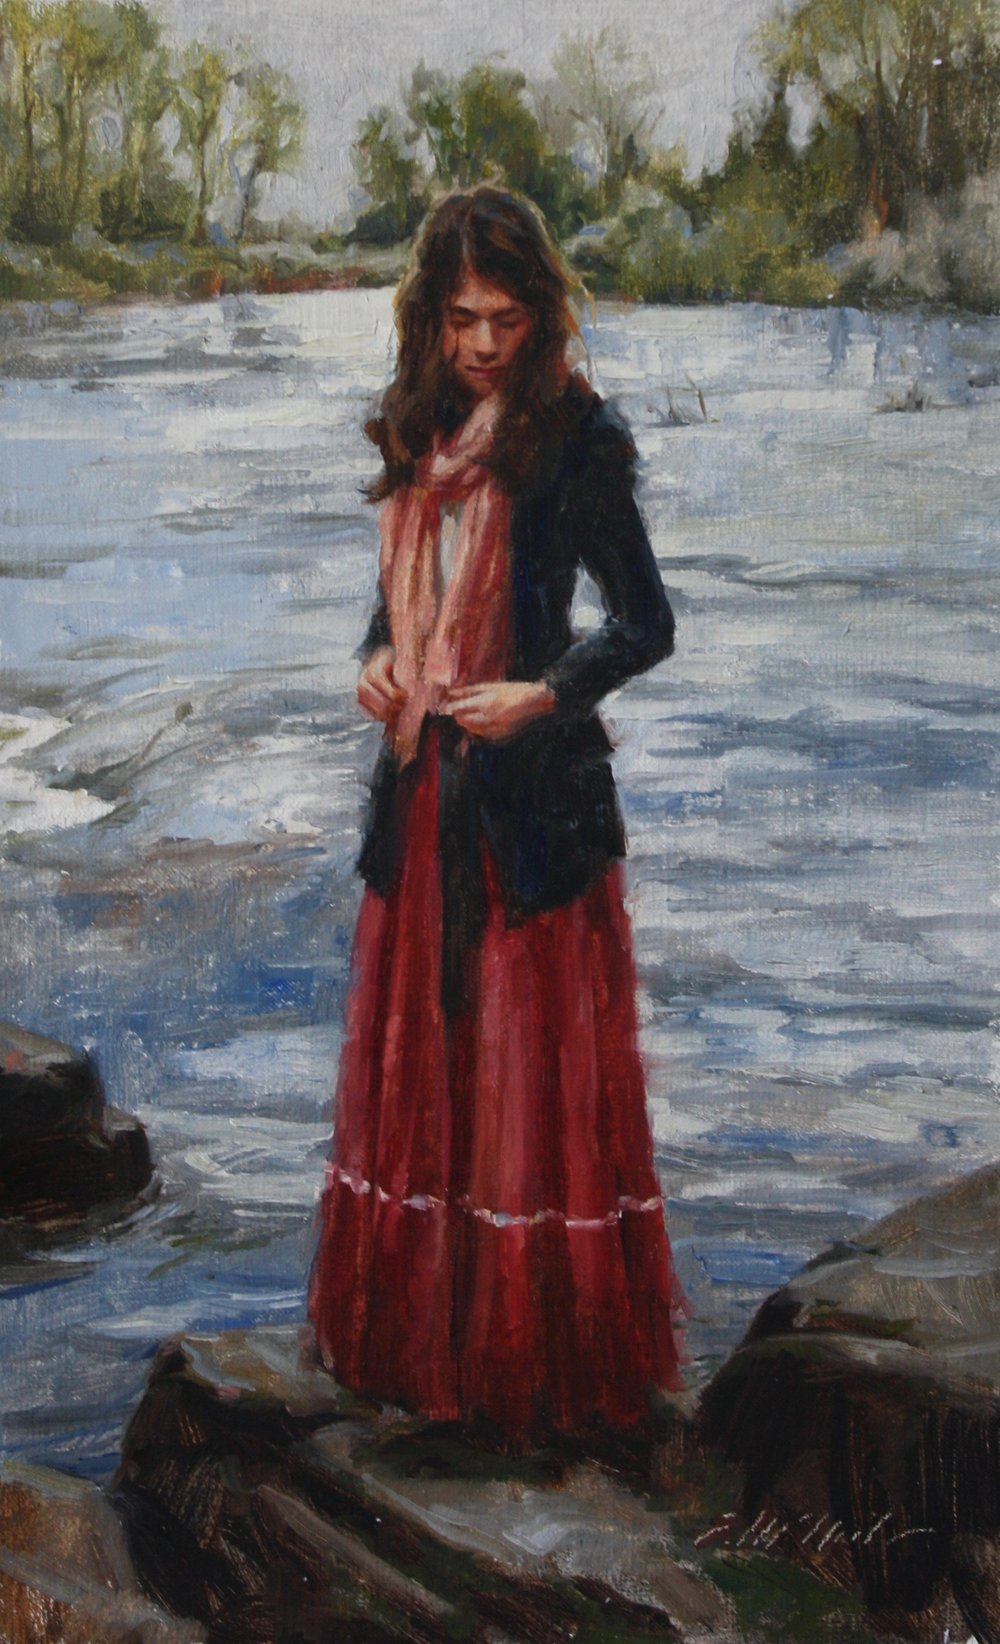 "By the River 12x7.5"" $380"